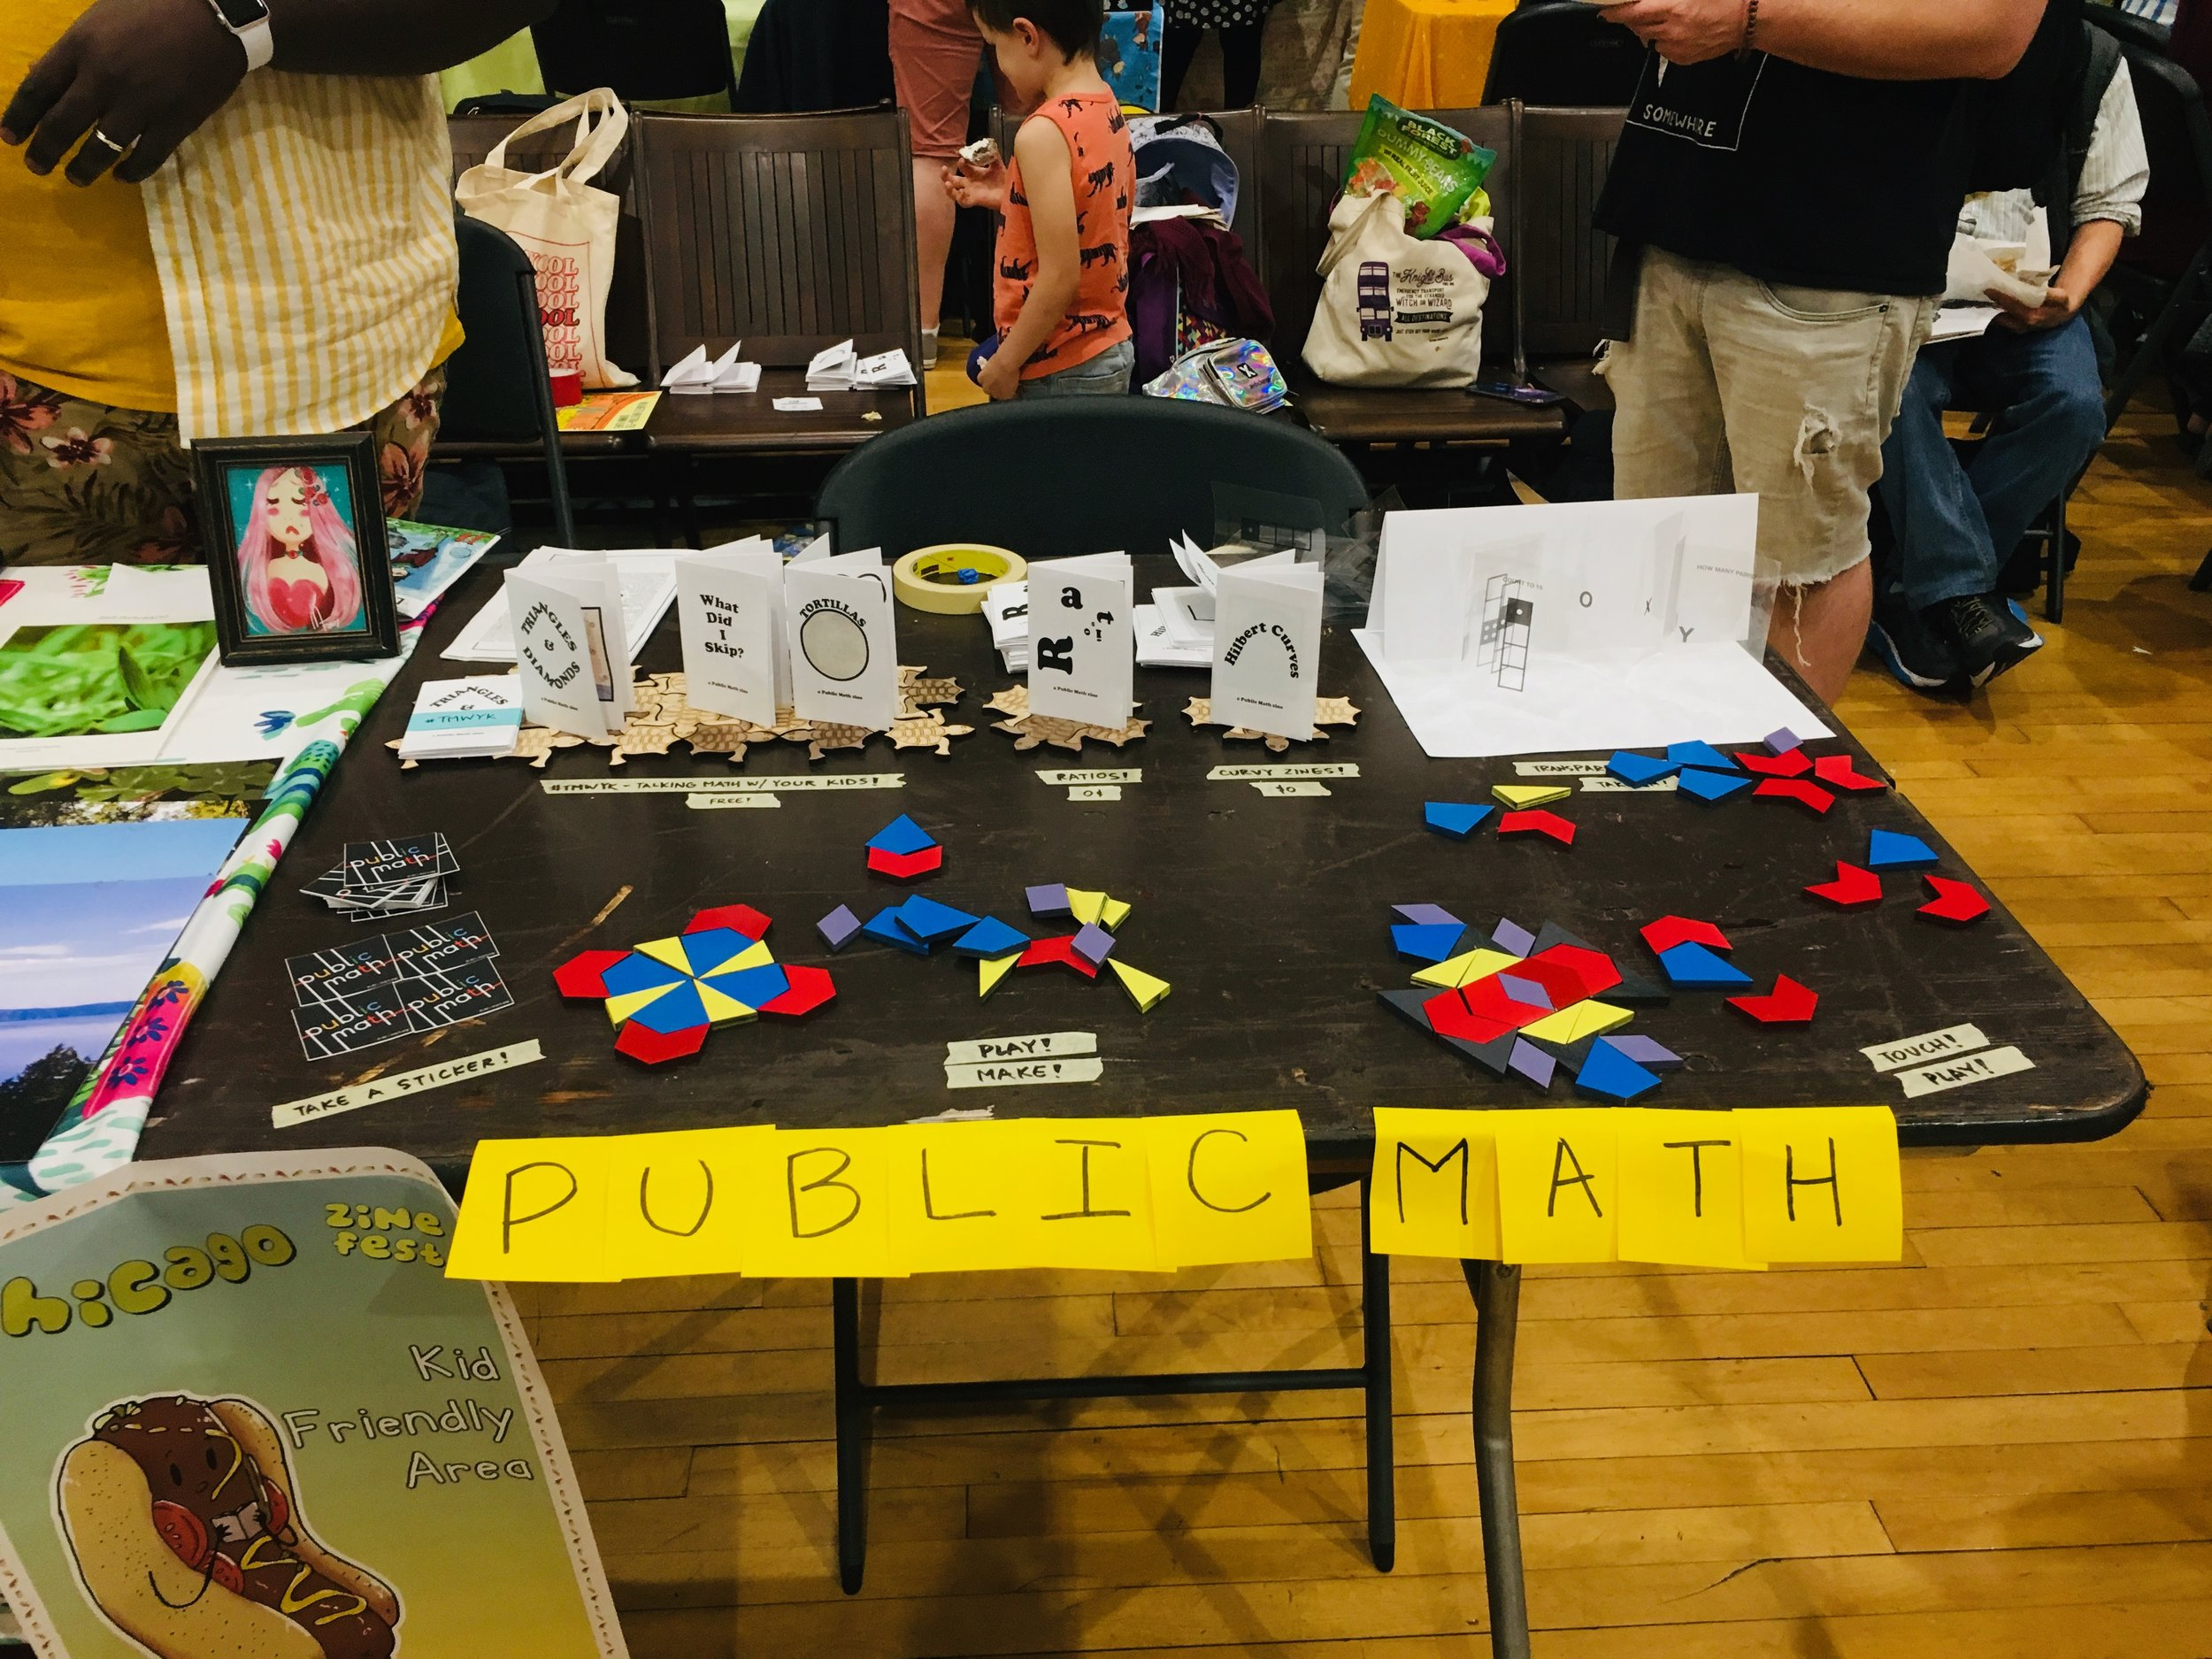 The Public Math zine table!